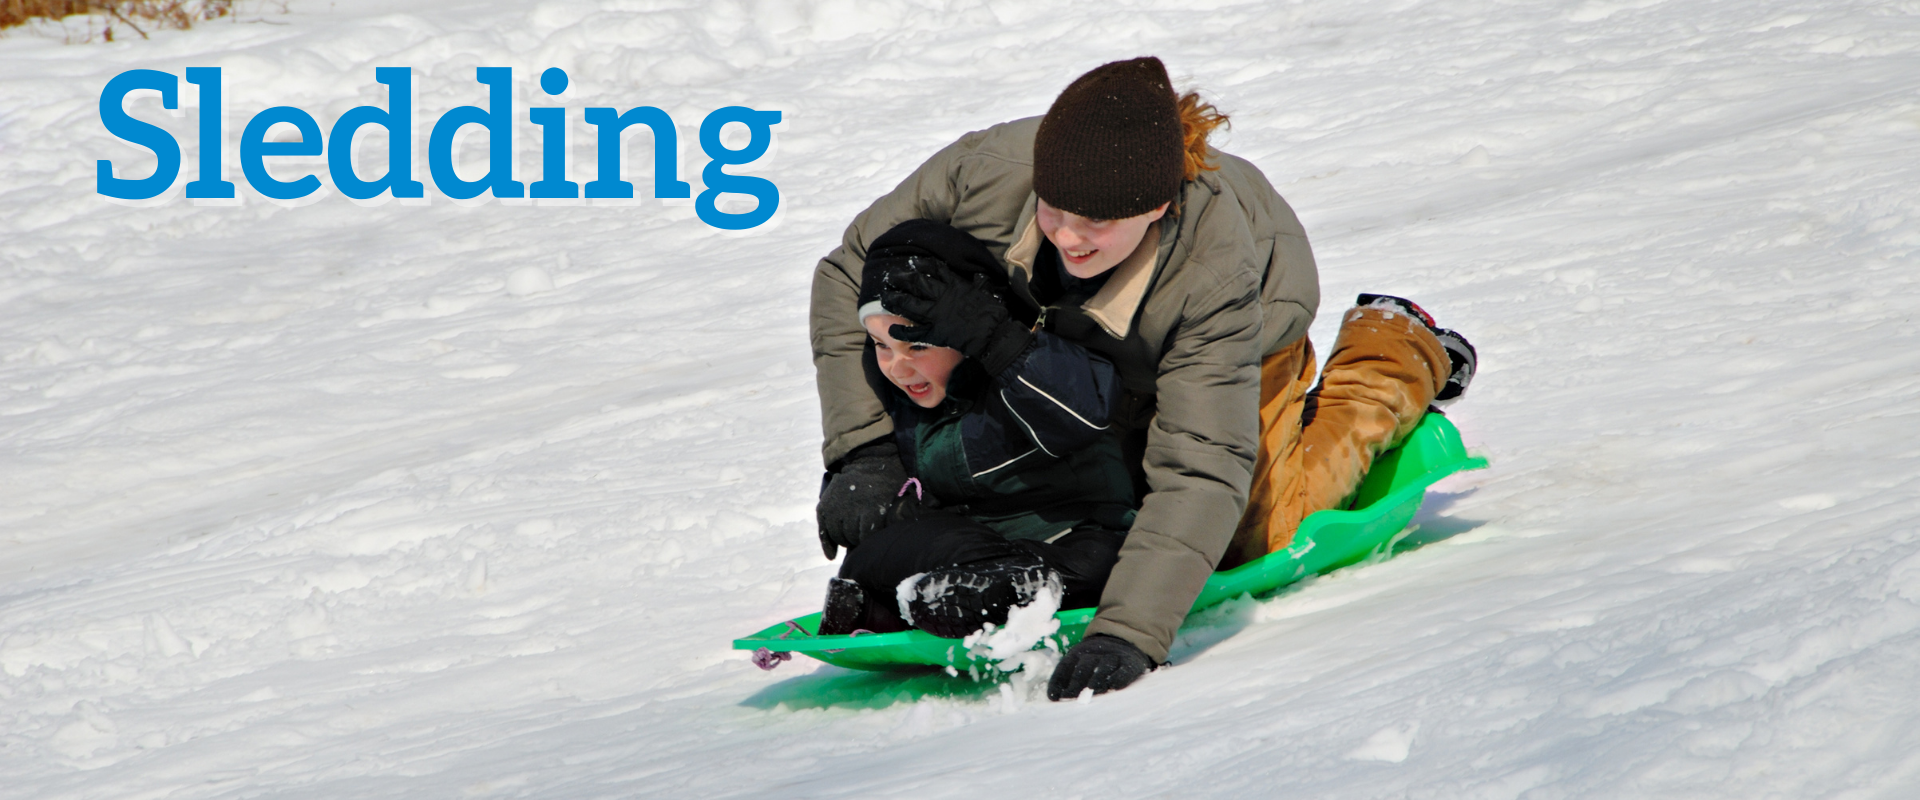 This image shows two kids on a sled sledding down the hill.